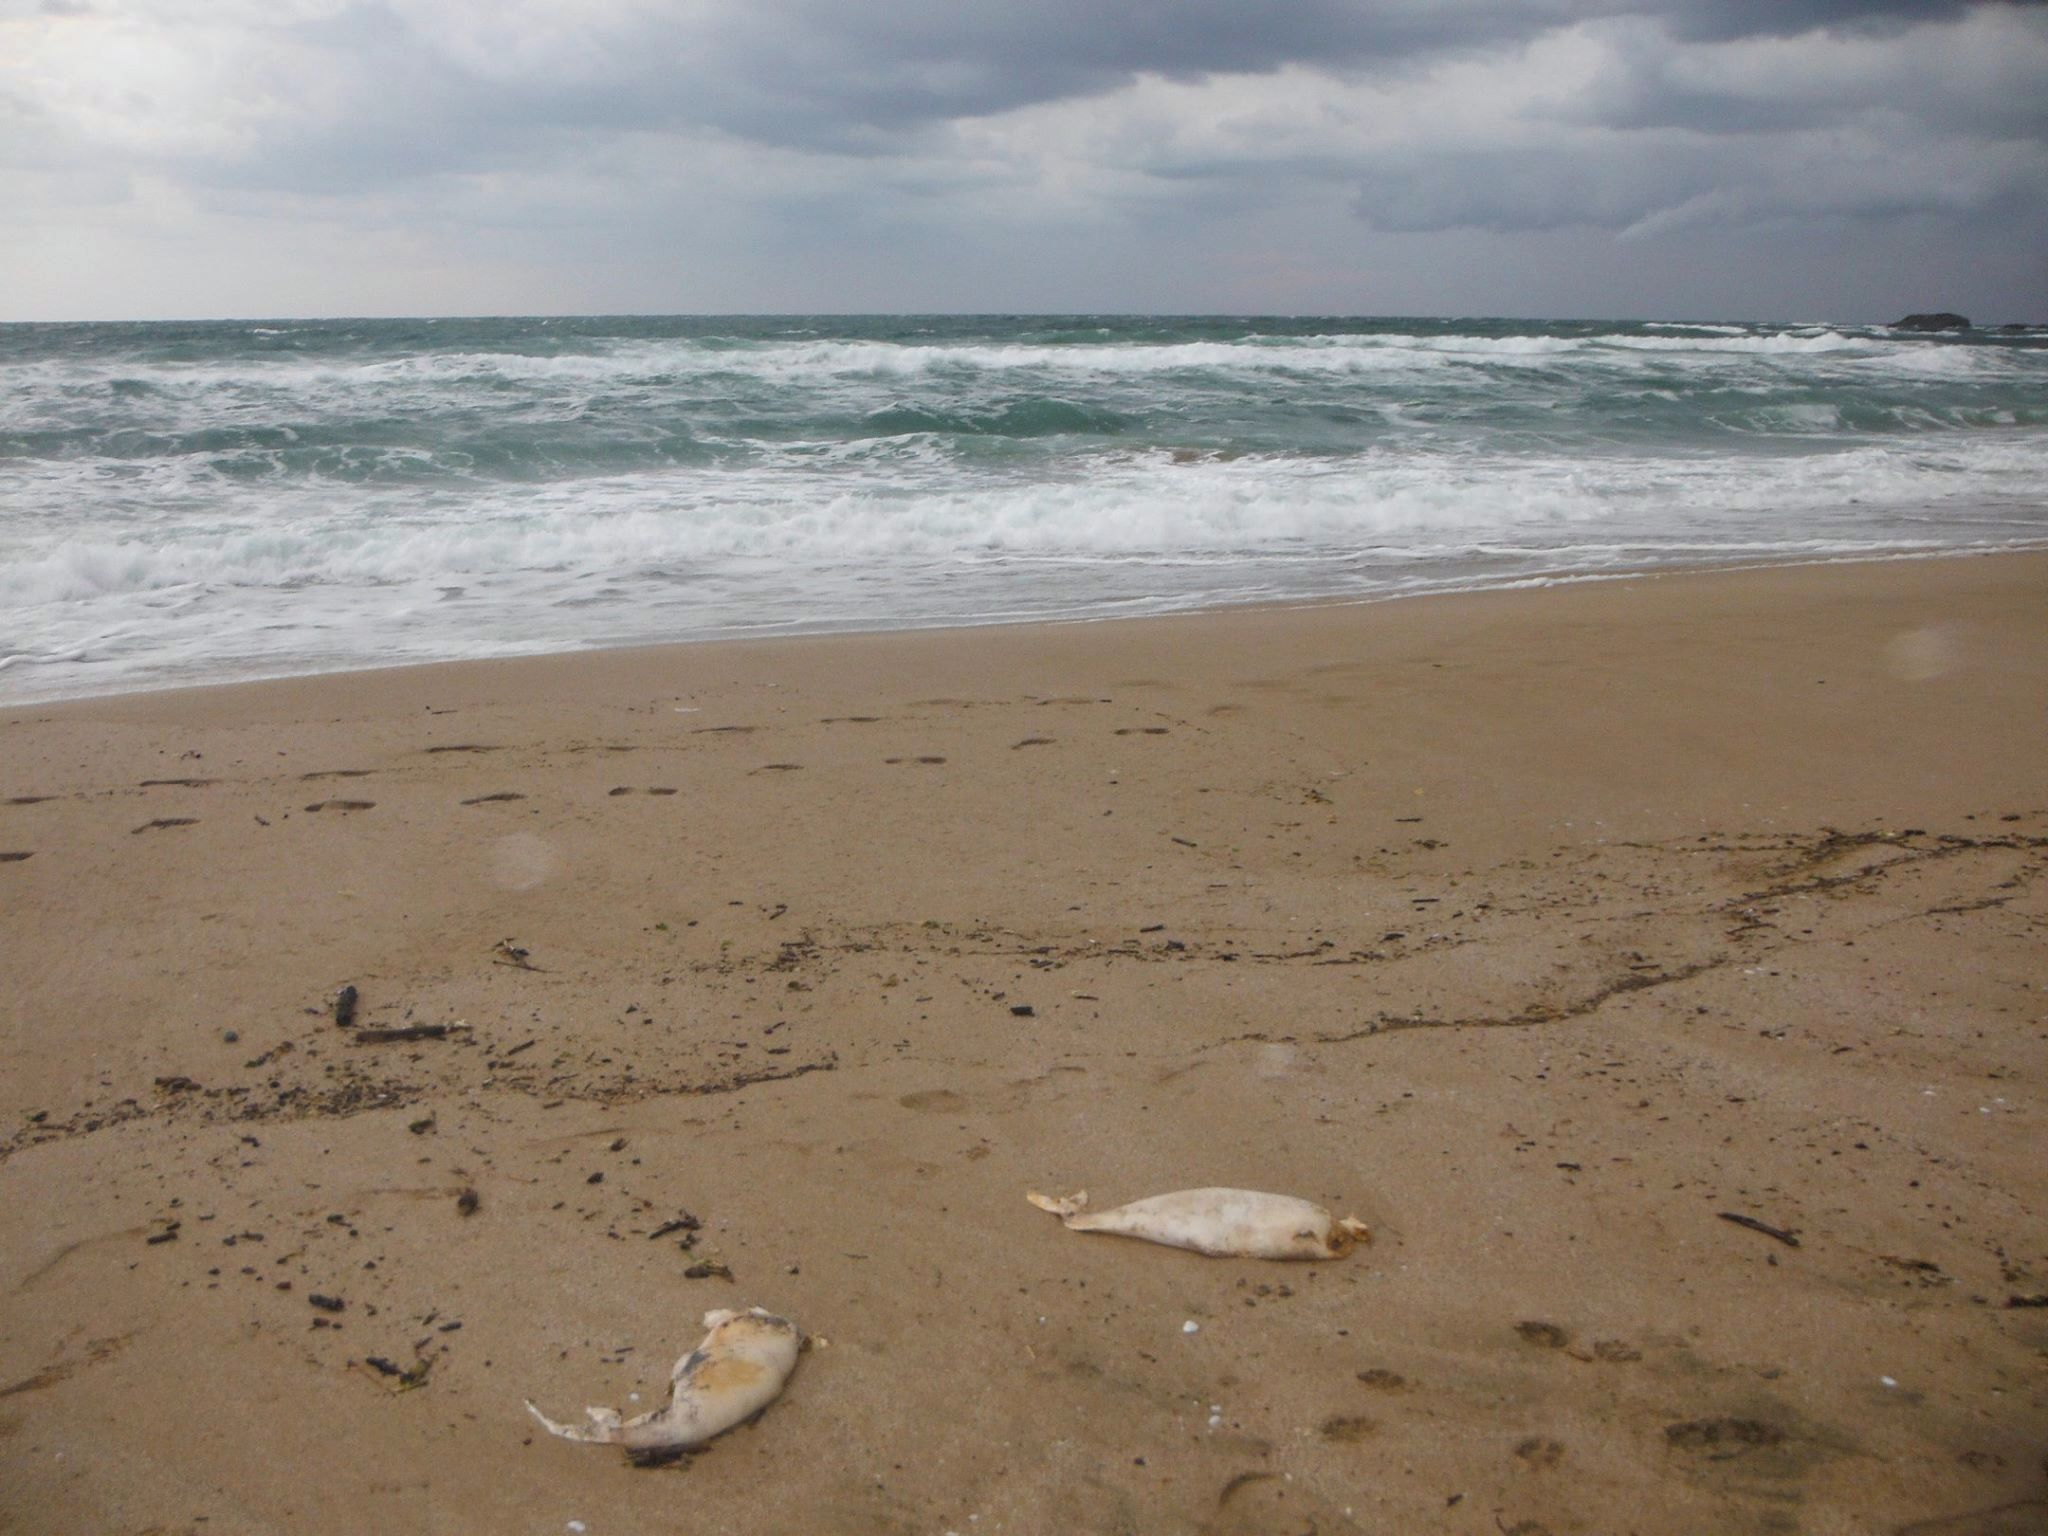 Baby dolphins die-off bulgaria, Baby dolphins mass kill black sea bulgaria, Baby dolphins calves die-off bulgaria 2015, Baby dolphins are stranding along the Black Sea coast of Bulgaria... And nobody knows why.